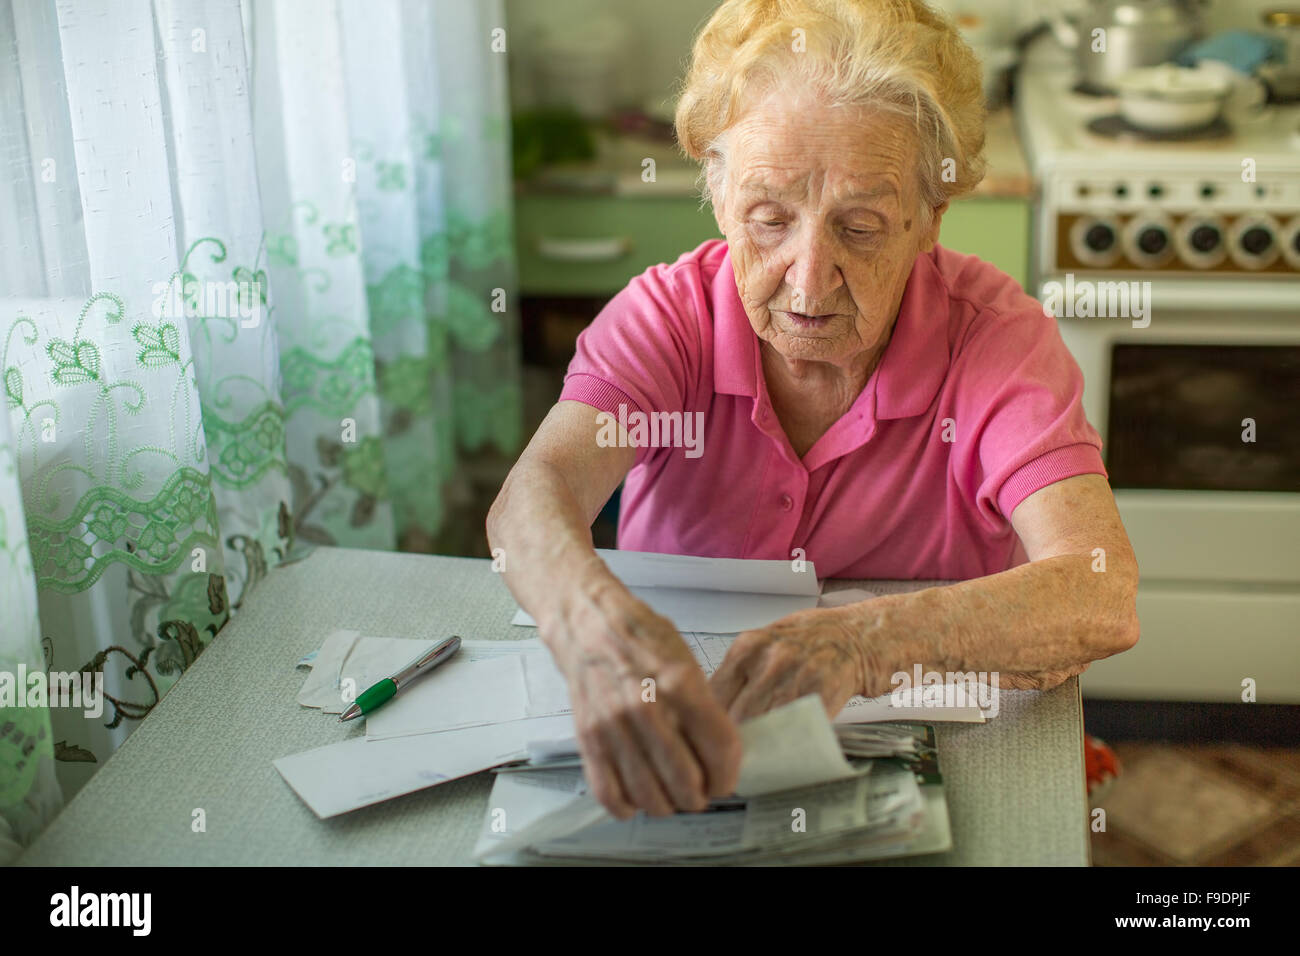 An elderly woman fills in for the payment of utilities. - Stock Image